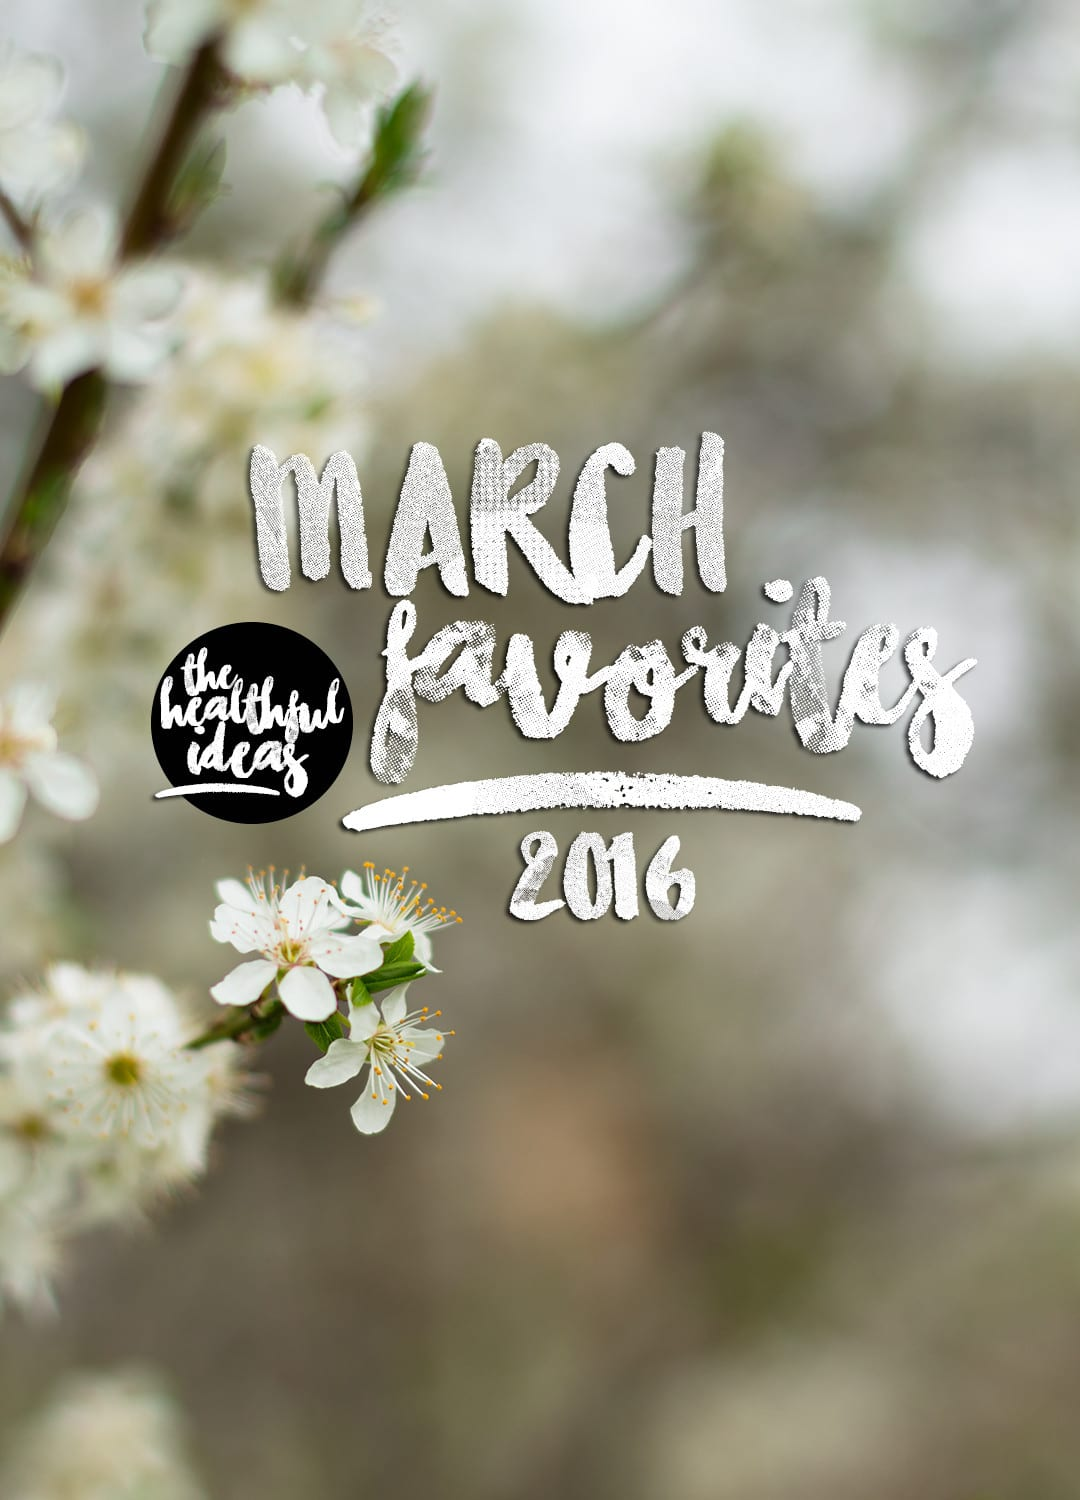 Monthly Favorites March 2016 by The Healthful Ideas | thehealthfulideas.com